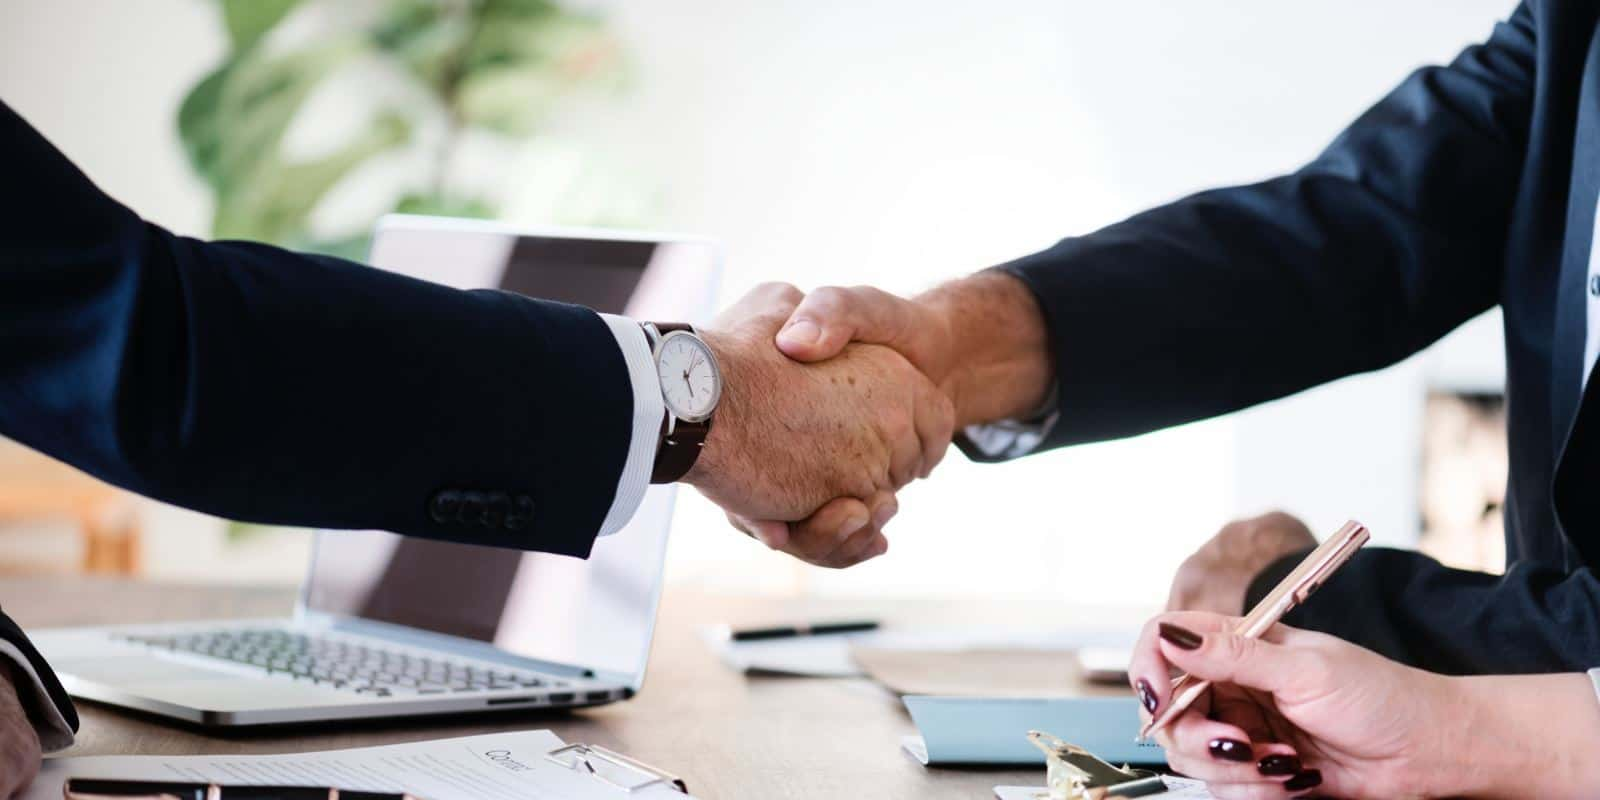 2 business people shaking hands over a meeting table